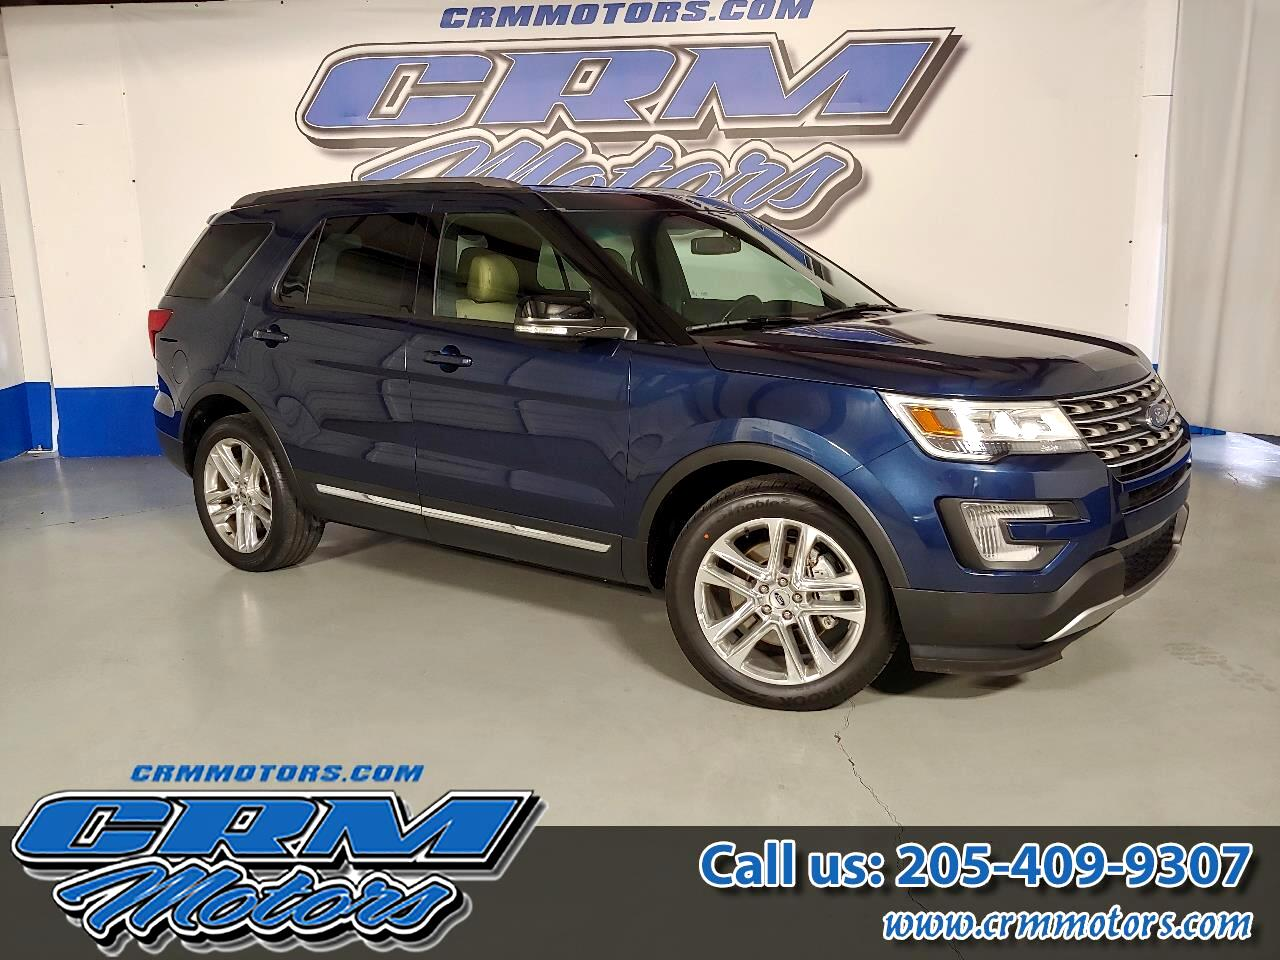 used 2016 ford explorer fwd xlt leather good gas mileage clean for sale in pelham al 35124. Black Bedroom Furniture Sets. Home Design Ideas